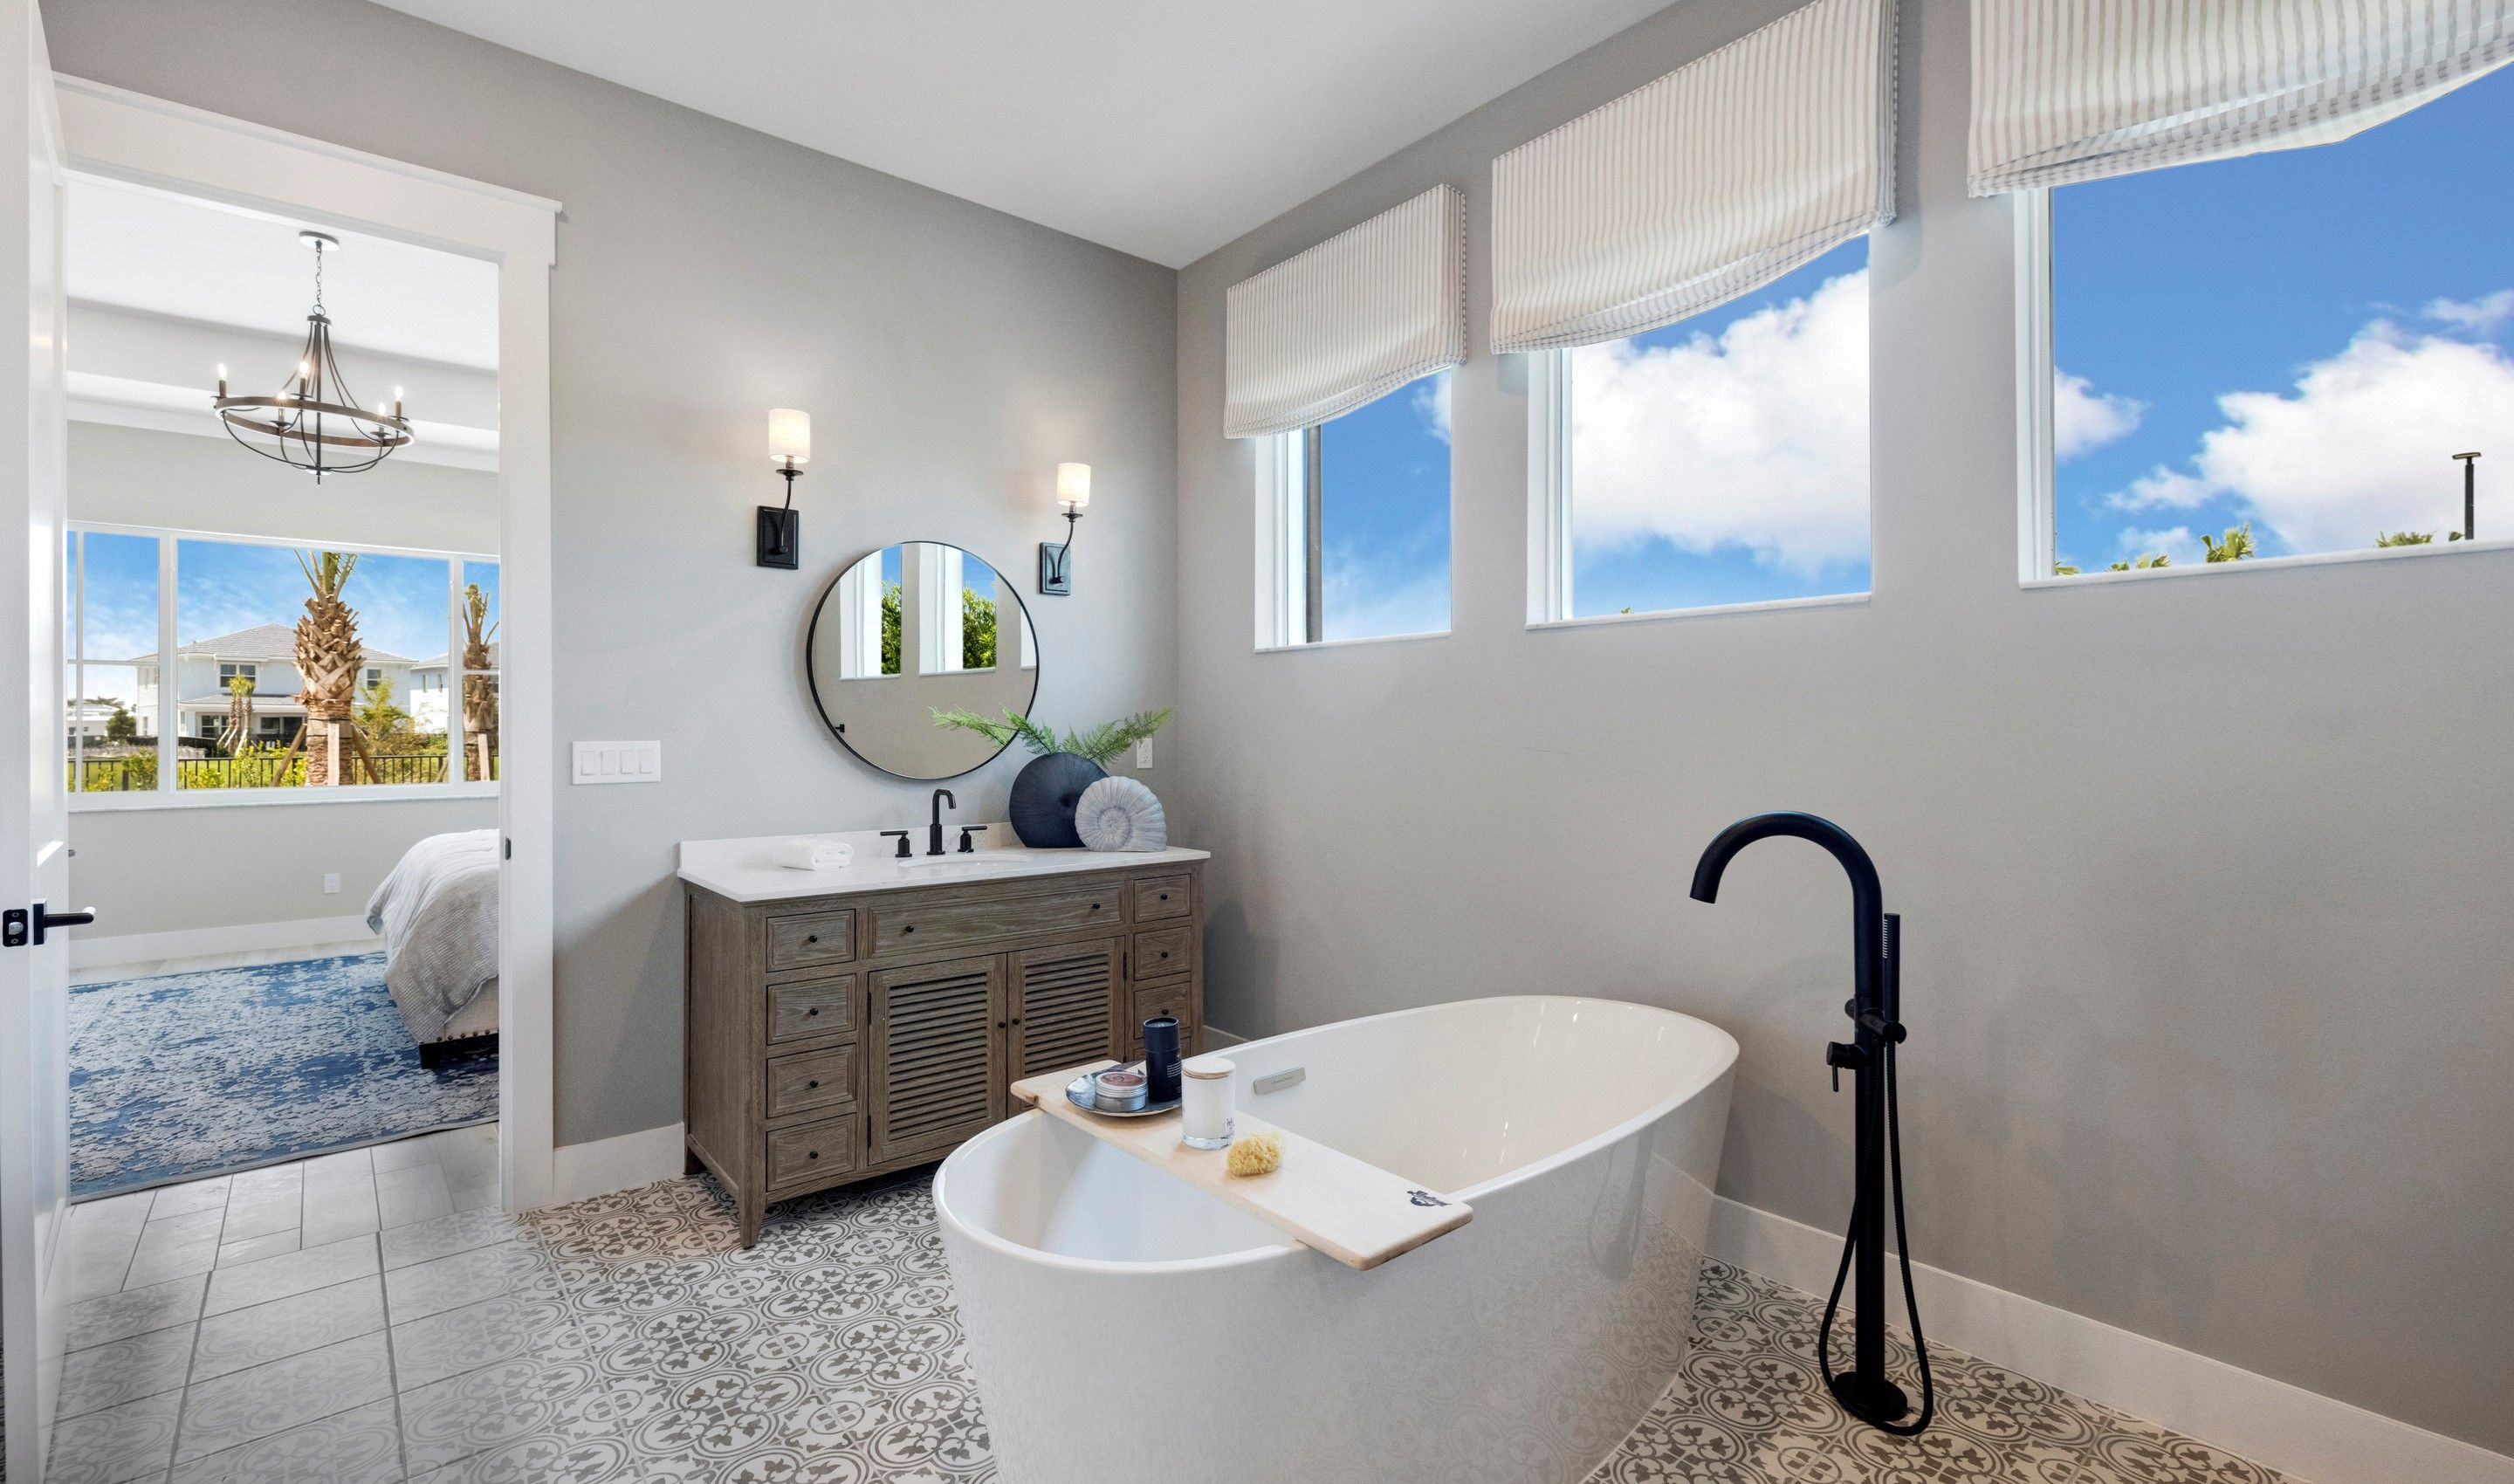 Bathroom featured in the Elsinore By K. Hovnanian® Homes in Palm Beach County, FL